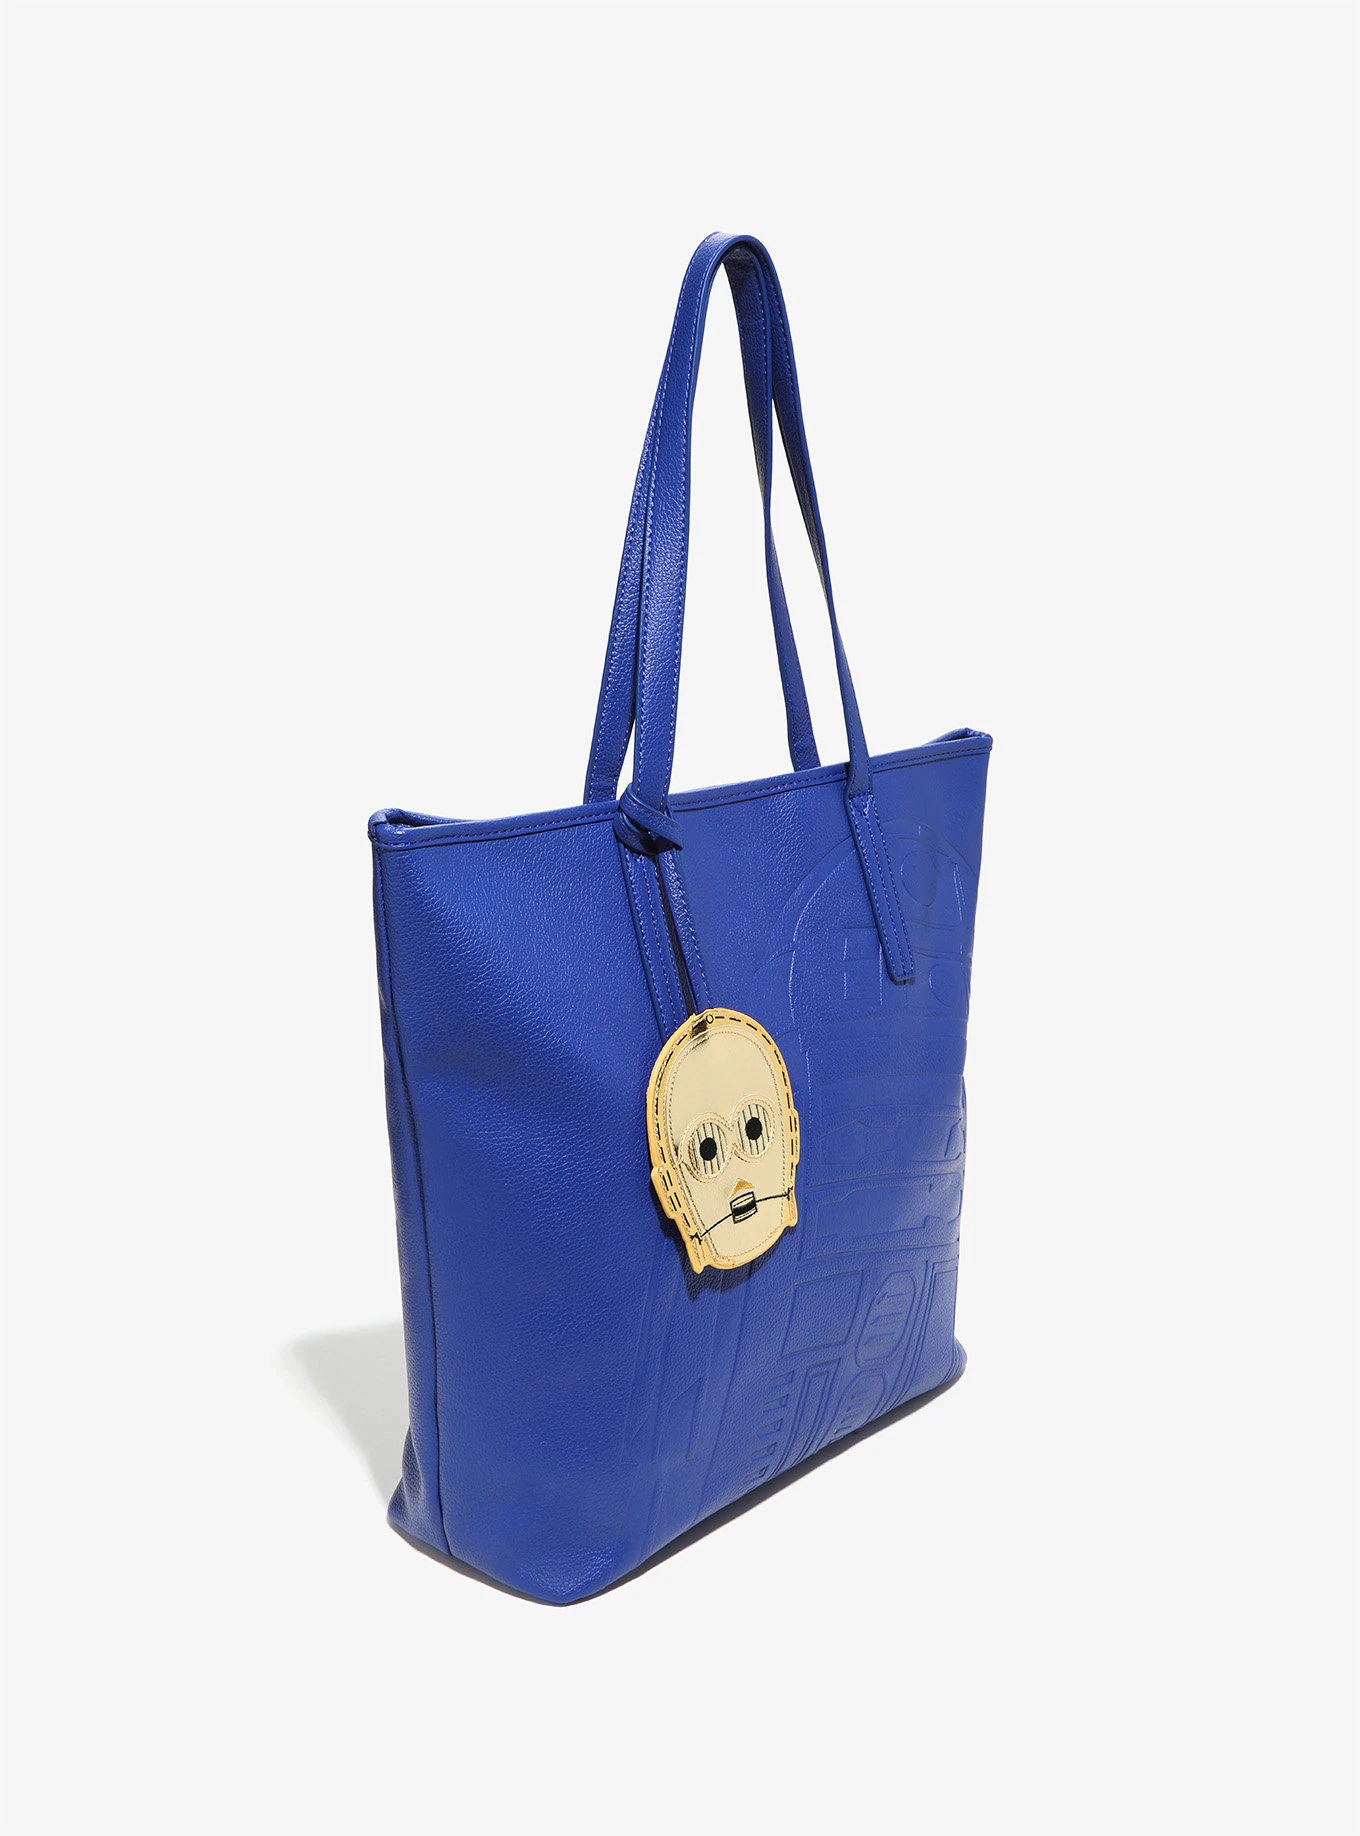 Loungefly x Star Wars R2-D2 Debossed Tote Bag on sale at Box Lunch